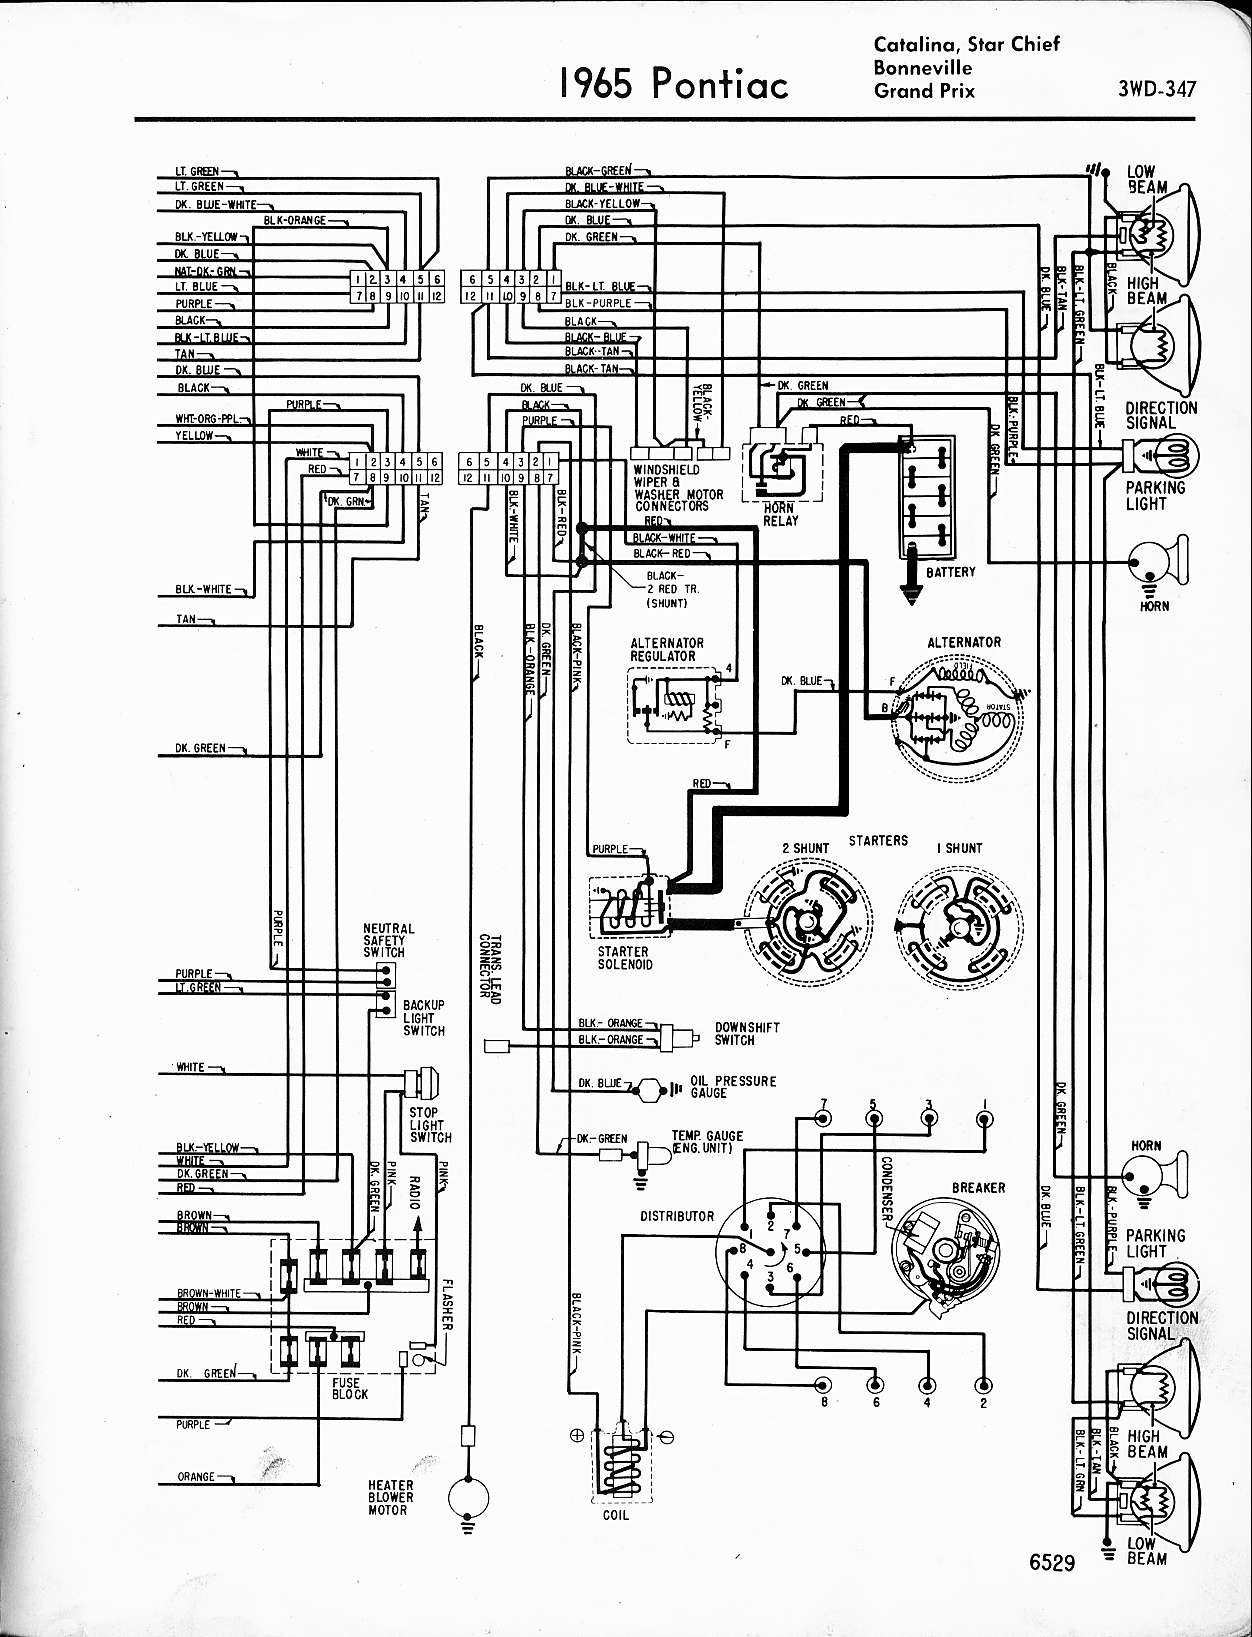 1974 Pontiac Firebird Wiring Diagram Worksheet And Amc Javelin Detailed Schematics Rh Antonartgallery Com Chevy Truck